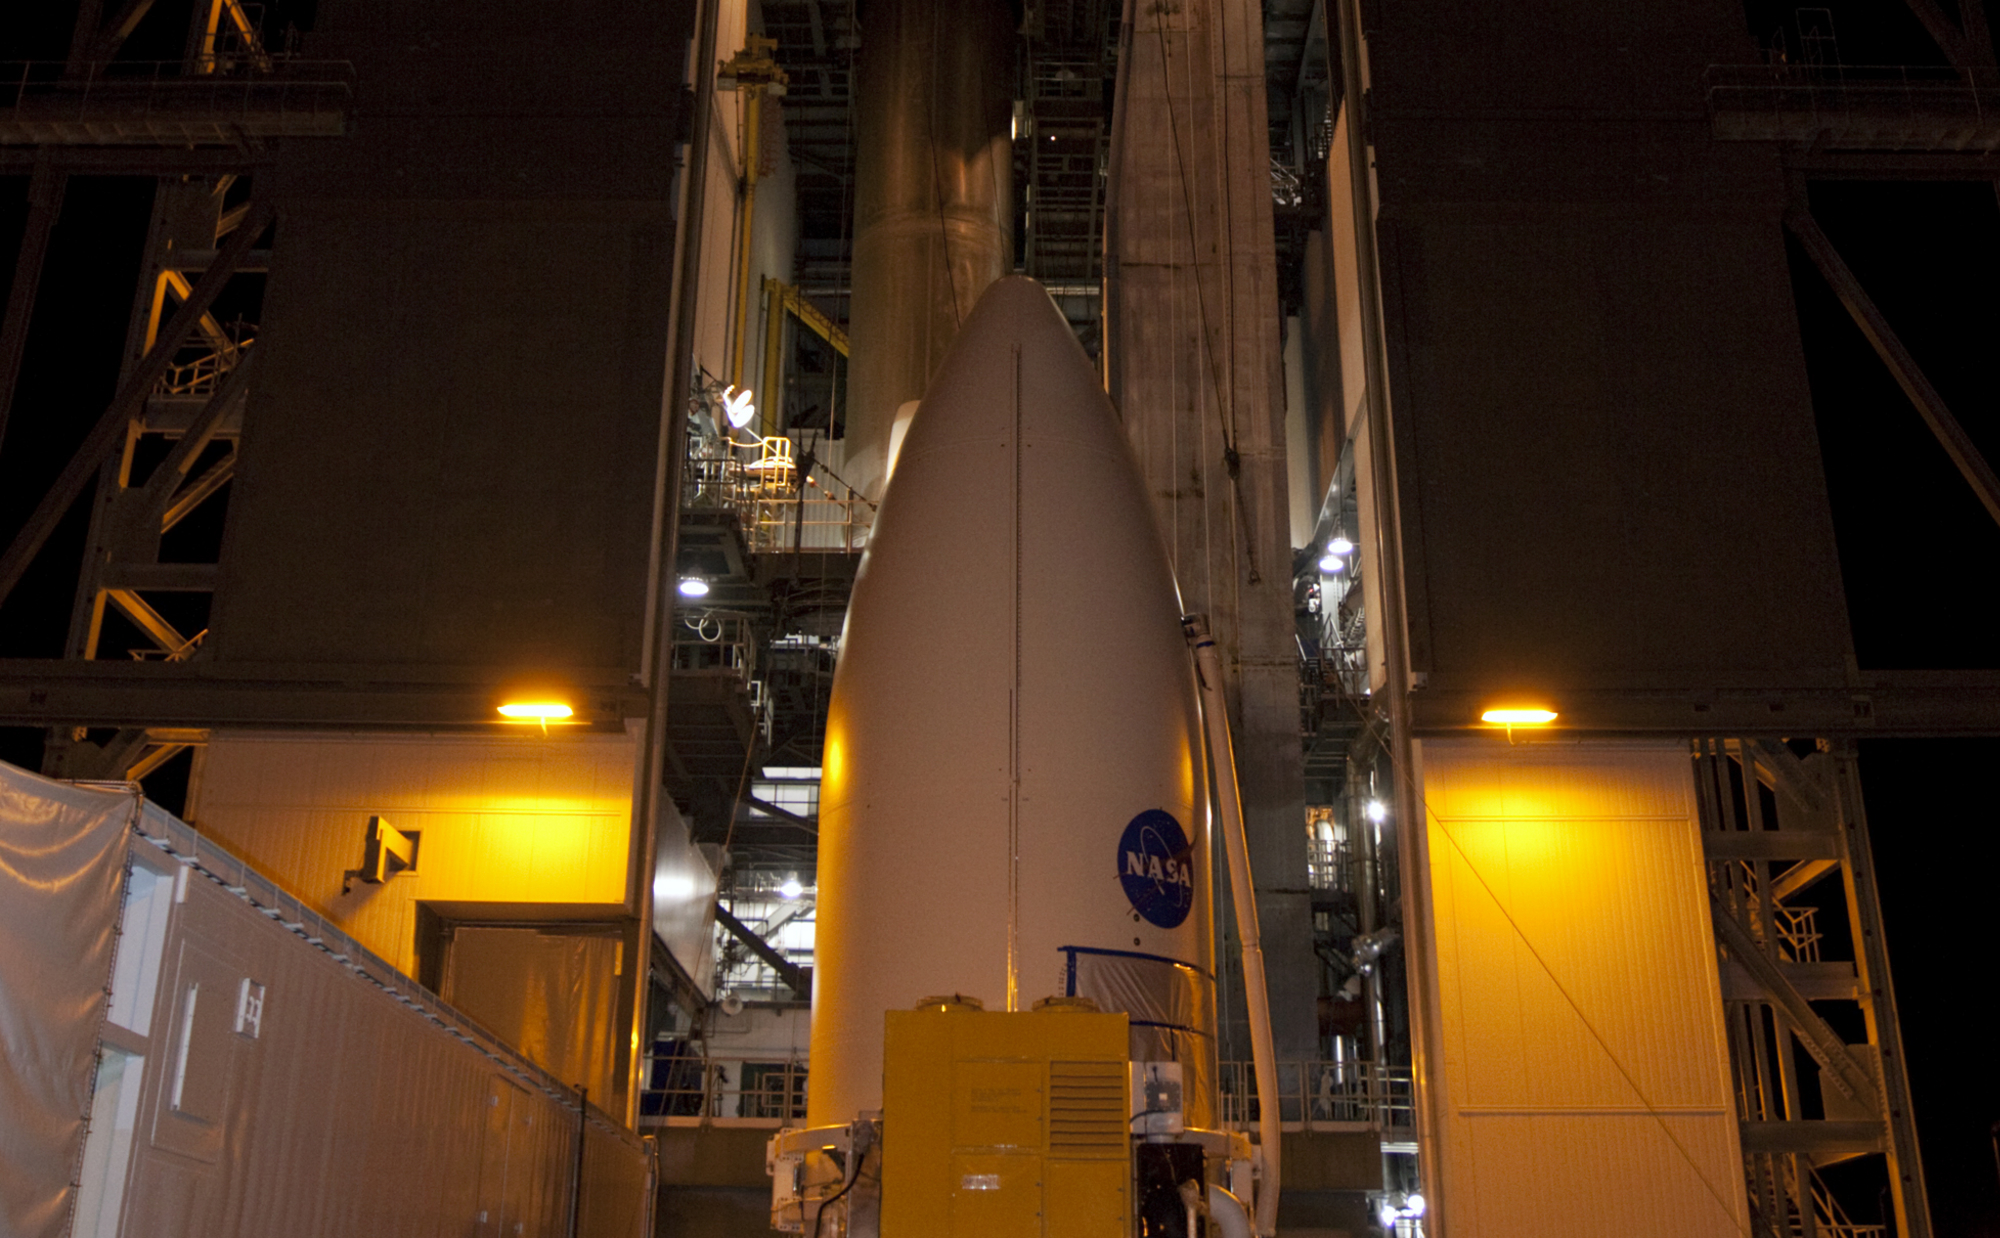 The payload fairing containing NASA's Mars Science Laboratory (MSL) spacecraft arrives at the Vertical Integration Facility at Space Launch Complex 41 at Cape Canaveral Air Force Station in Florida.